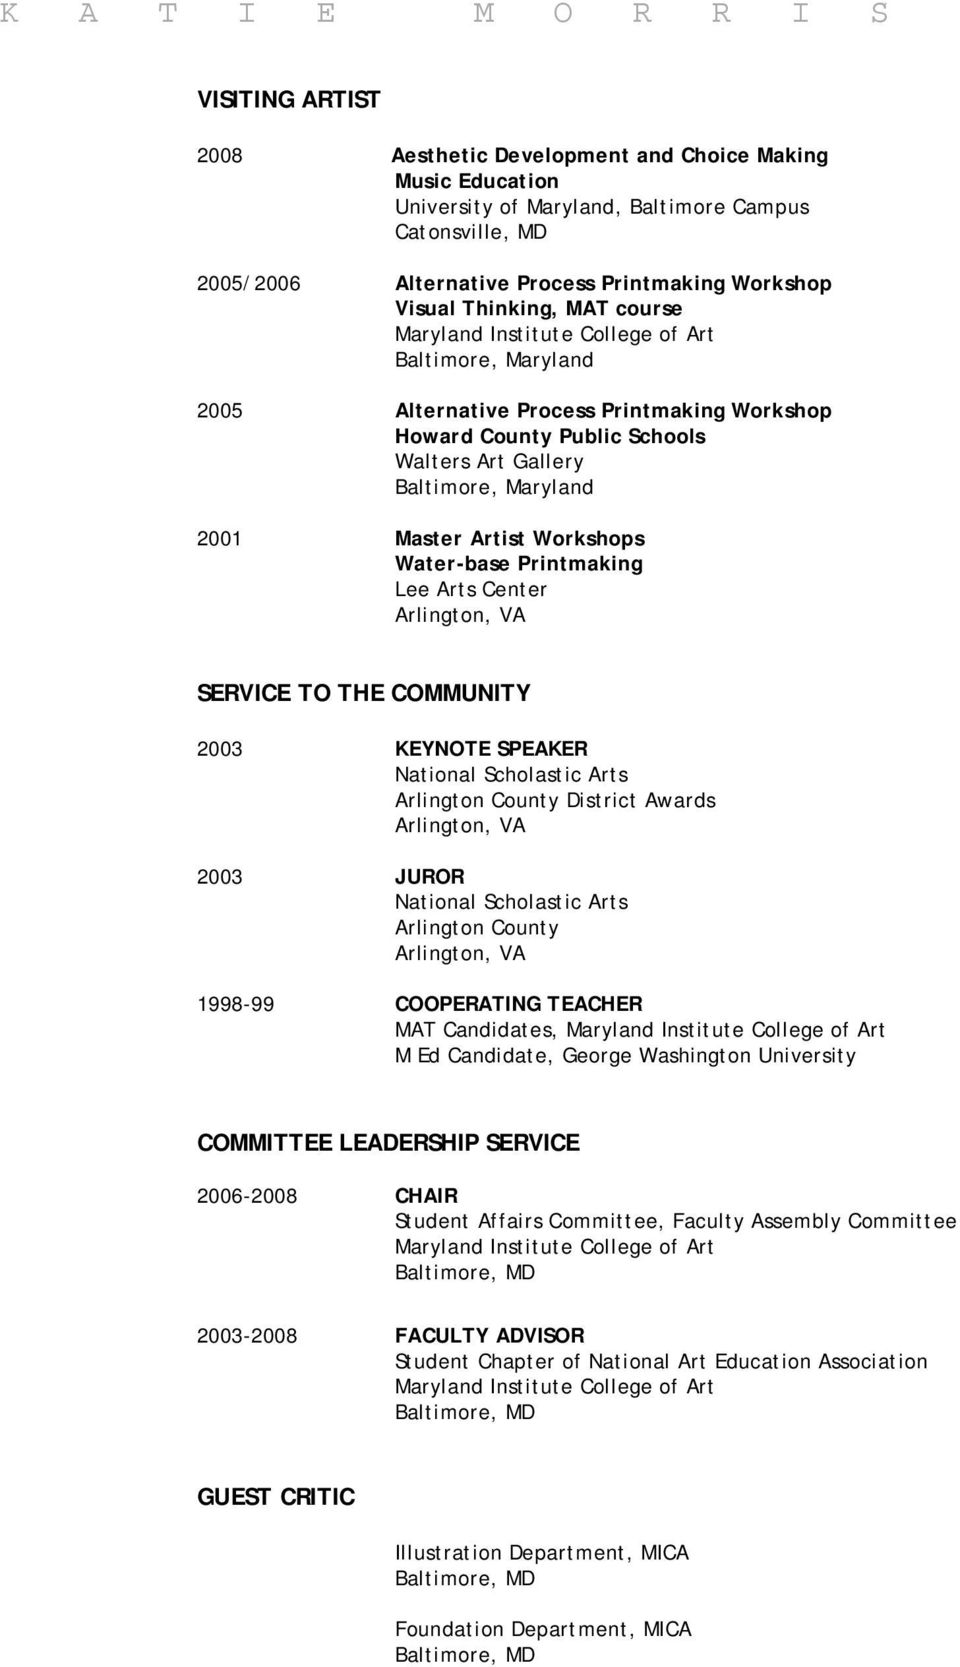 COMMUNITY 2003 KEYNOTE SPEAKER National Scholastic Arts Arlington County District Awards 2003 JUROR National Scholastic Arts Arlington County 1998-99 COOPERATING TEACHER MAT Candidates, M Ed